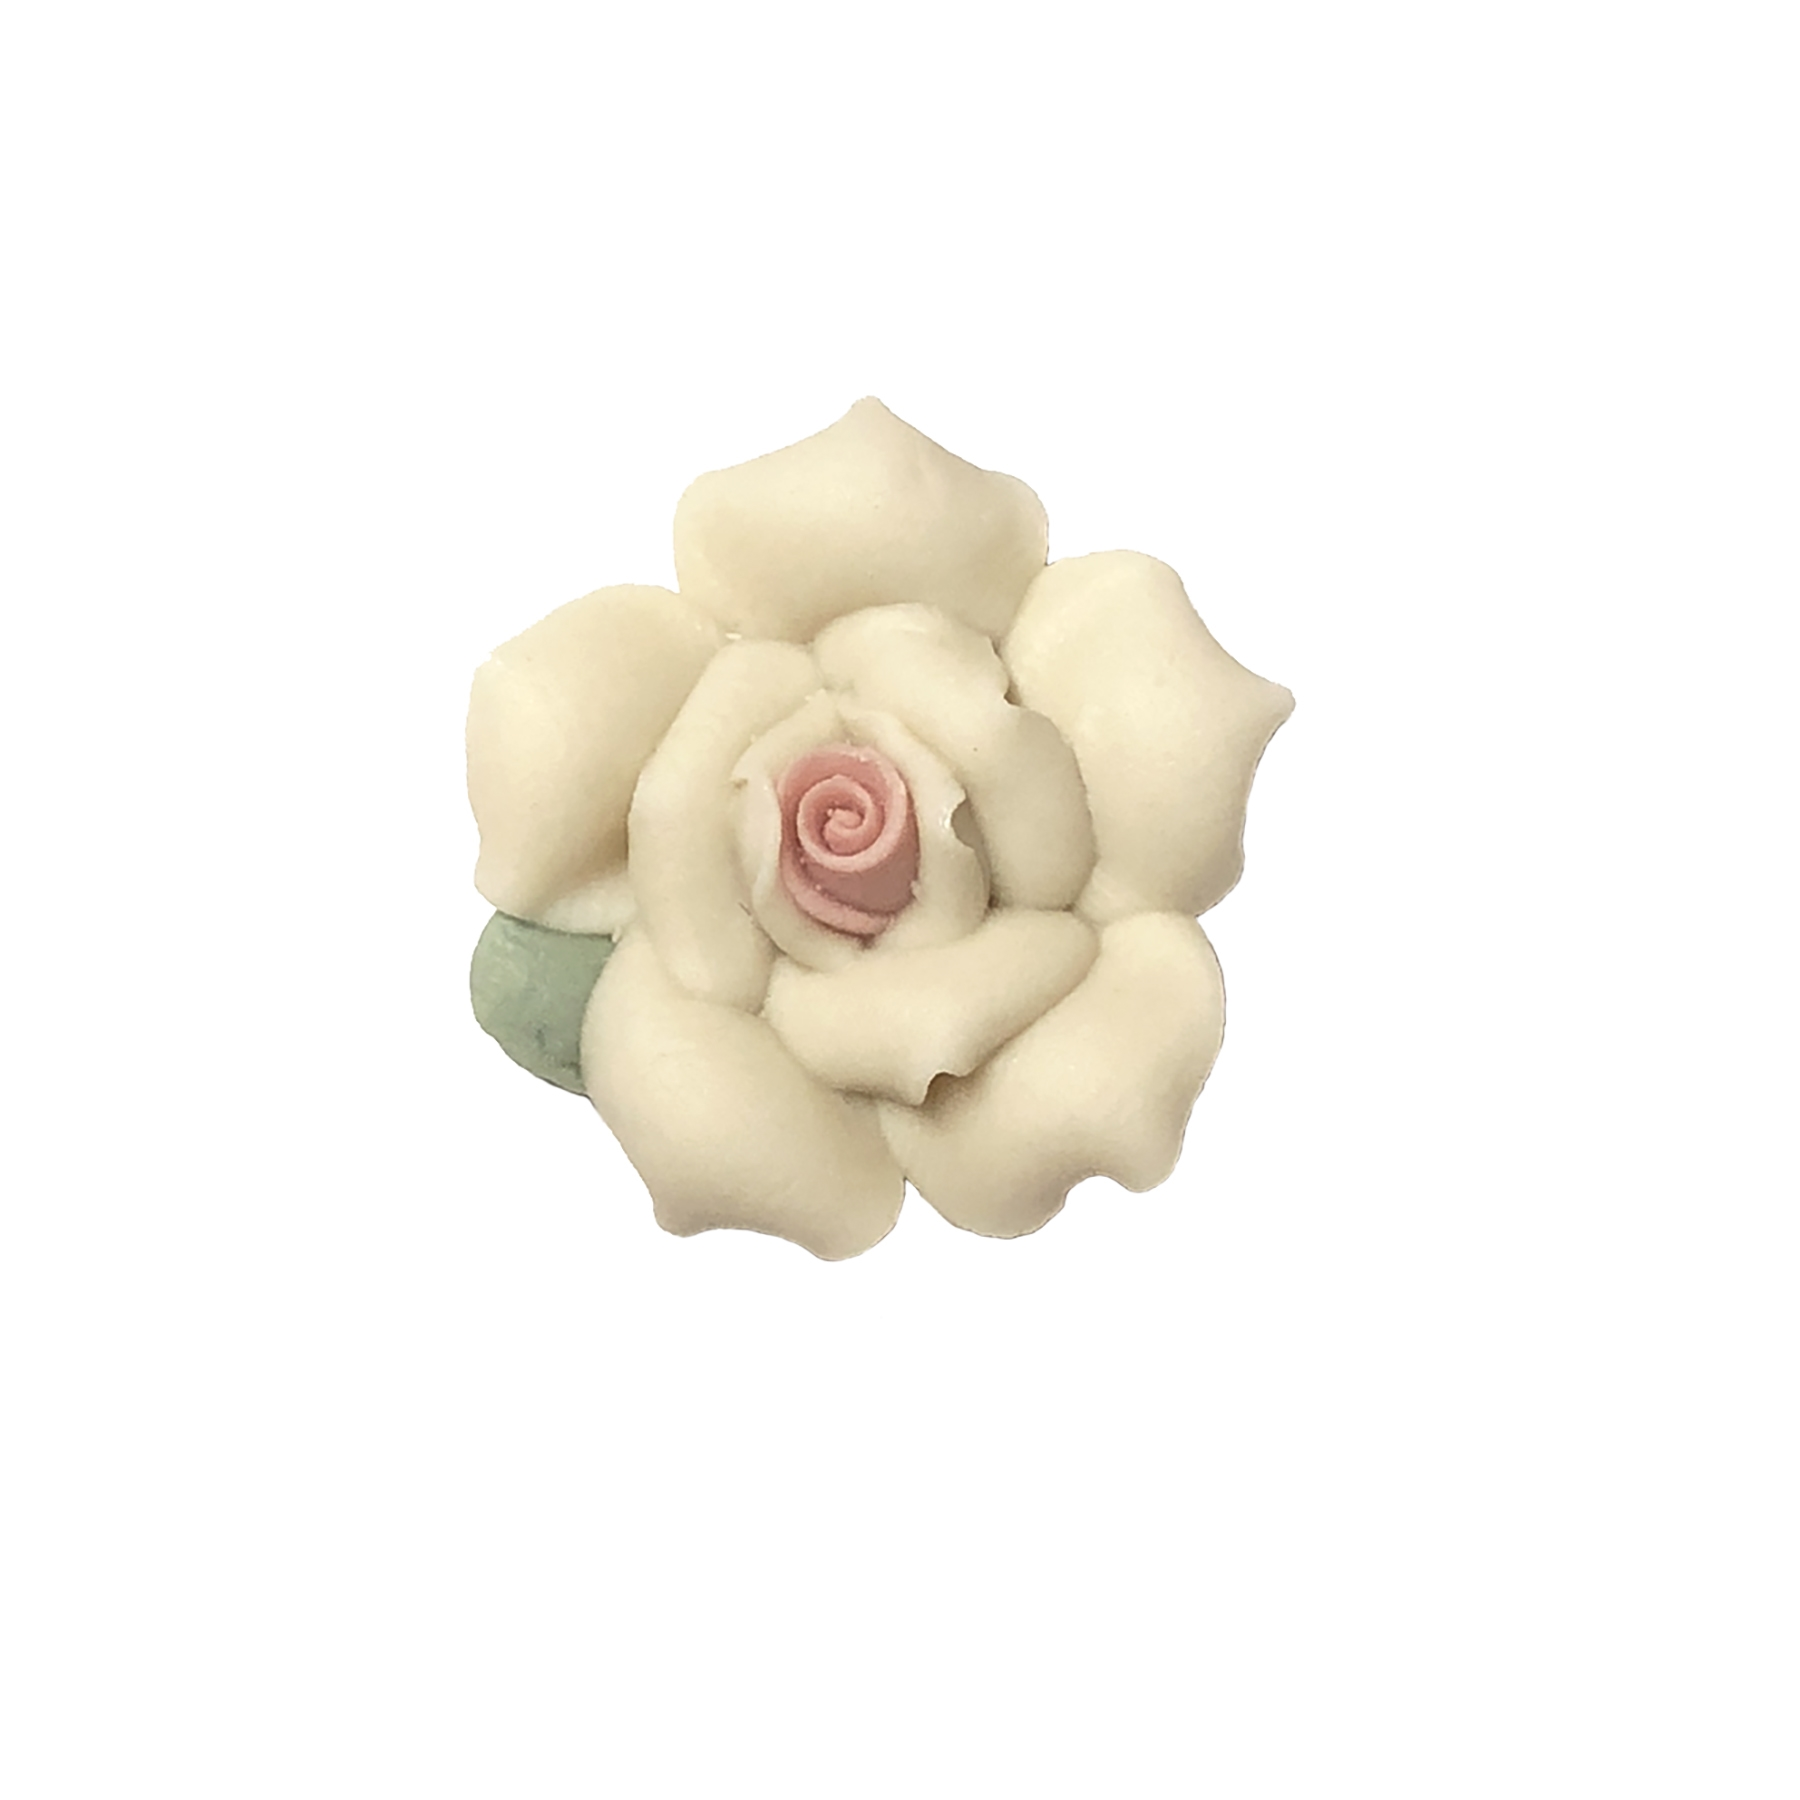 ceramic flowers, jewelry supplies, handmade, 06171, jewelry making supplies, vintage jewelry supplies, handmade flowers, B'sue Boutiques, ceramic roses, handmade jewelry, bisque rose, porcelain rose